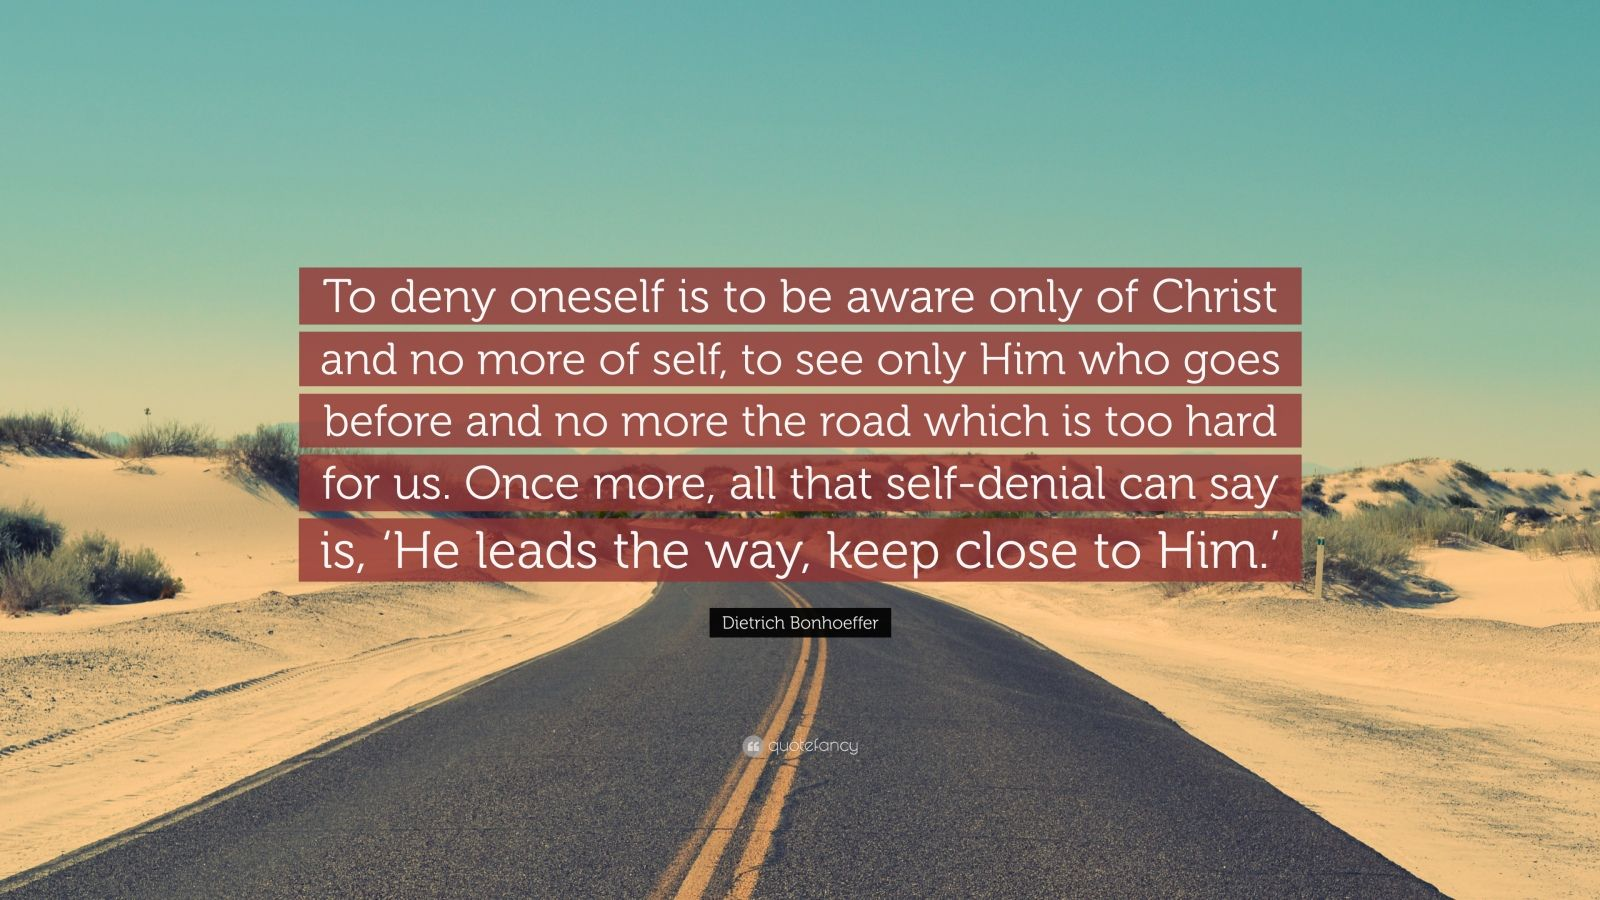 """Dietrich Bonhoeffer Quote: """"To deny oneself is to be aware only of Christ and no more of self, to see only Him who goes before and no more the road which is too hard for us. Once more, all that self-denial can say is, 'He leads the way, keep close to Him.'"""""""